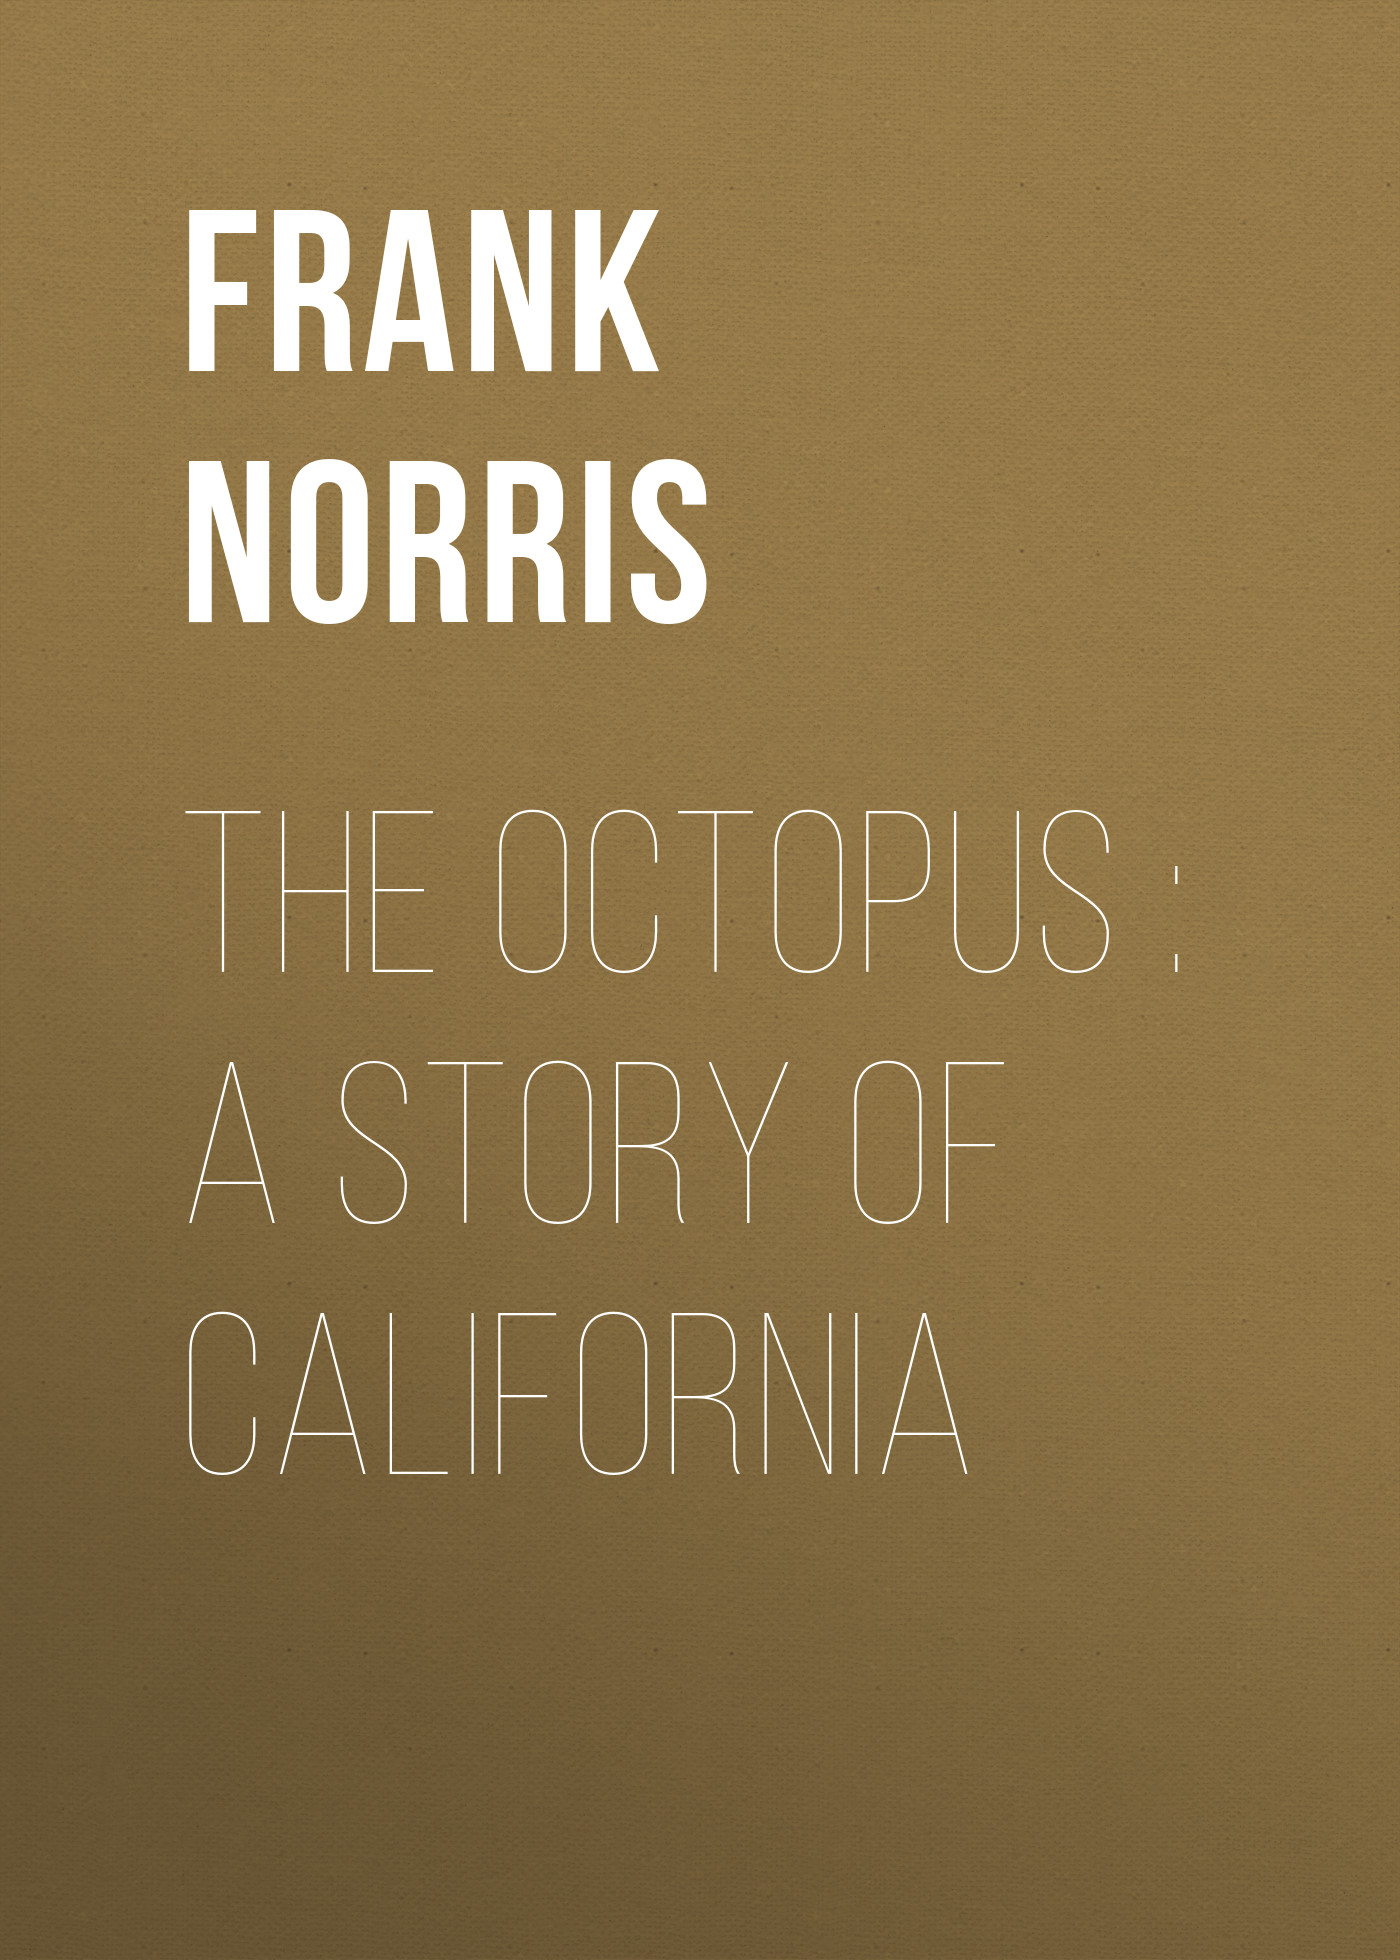 Frank Norris The Octopus : A Story of California